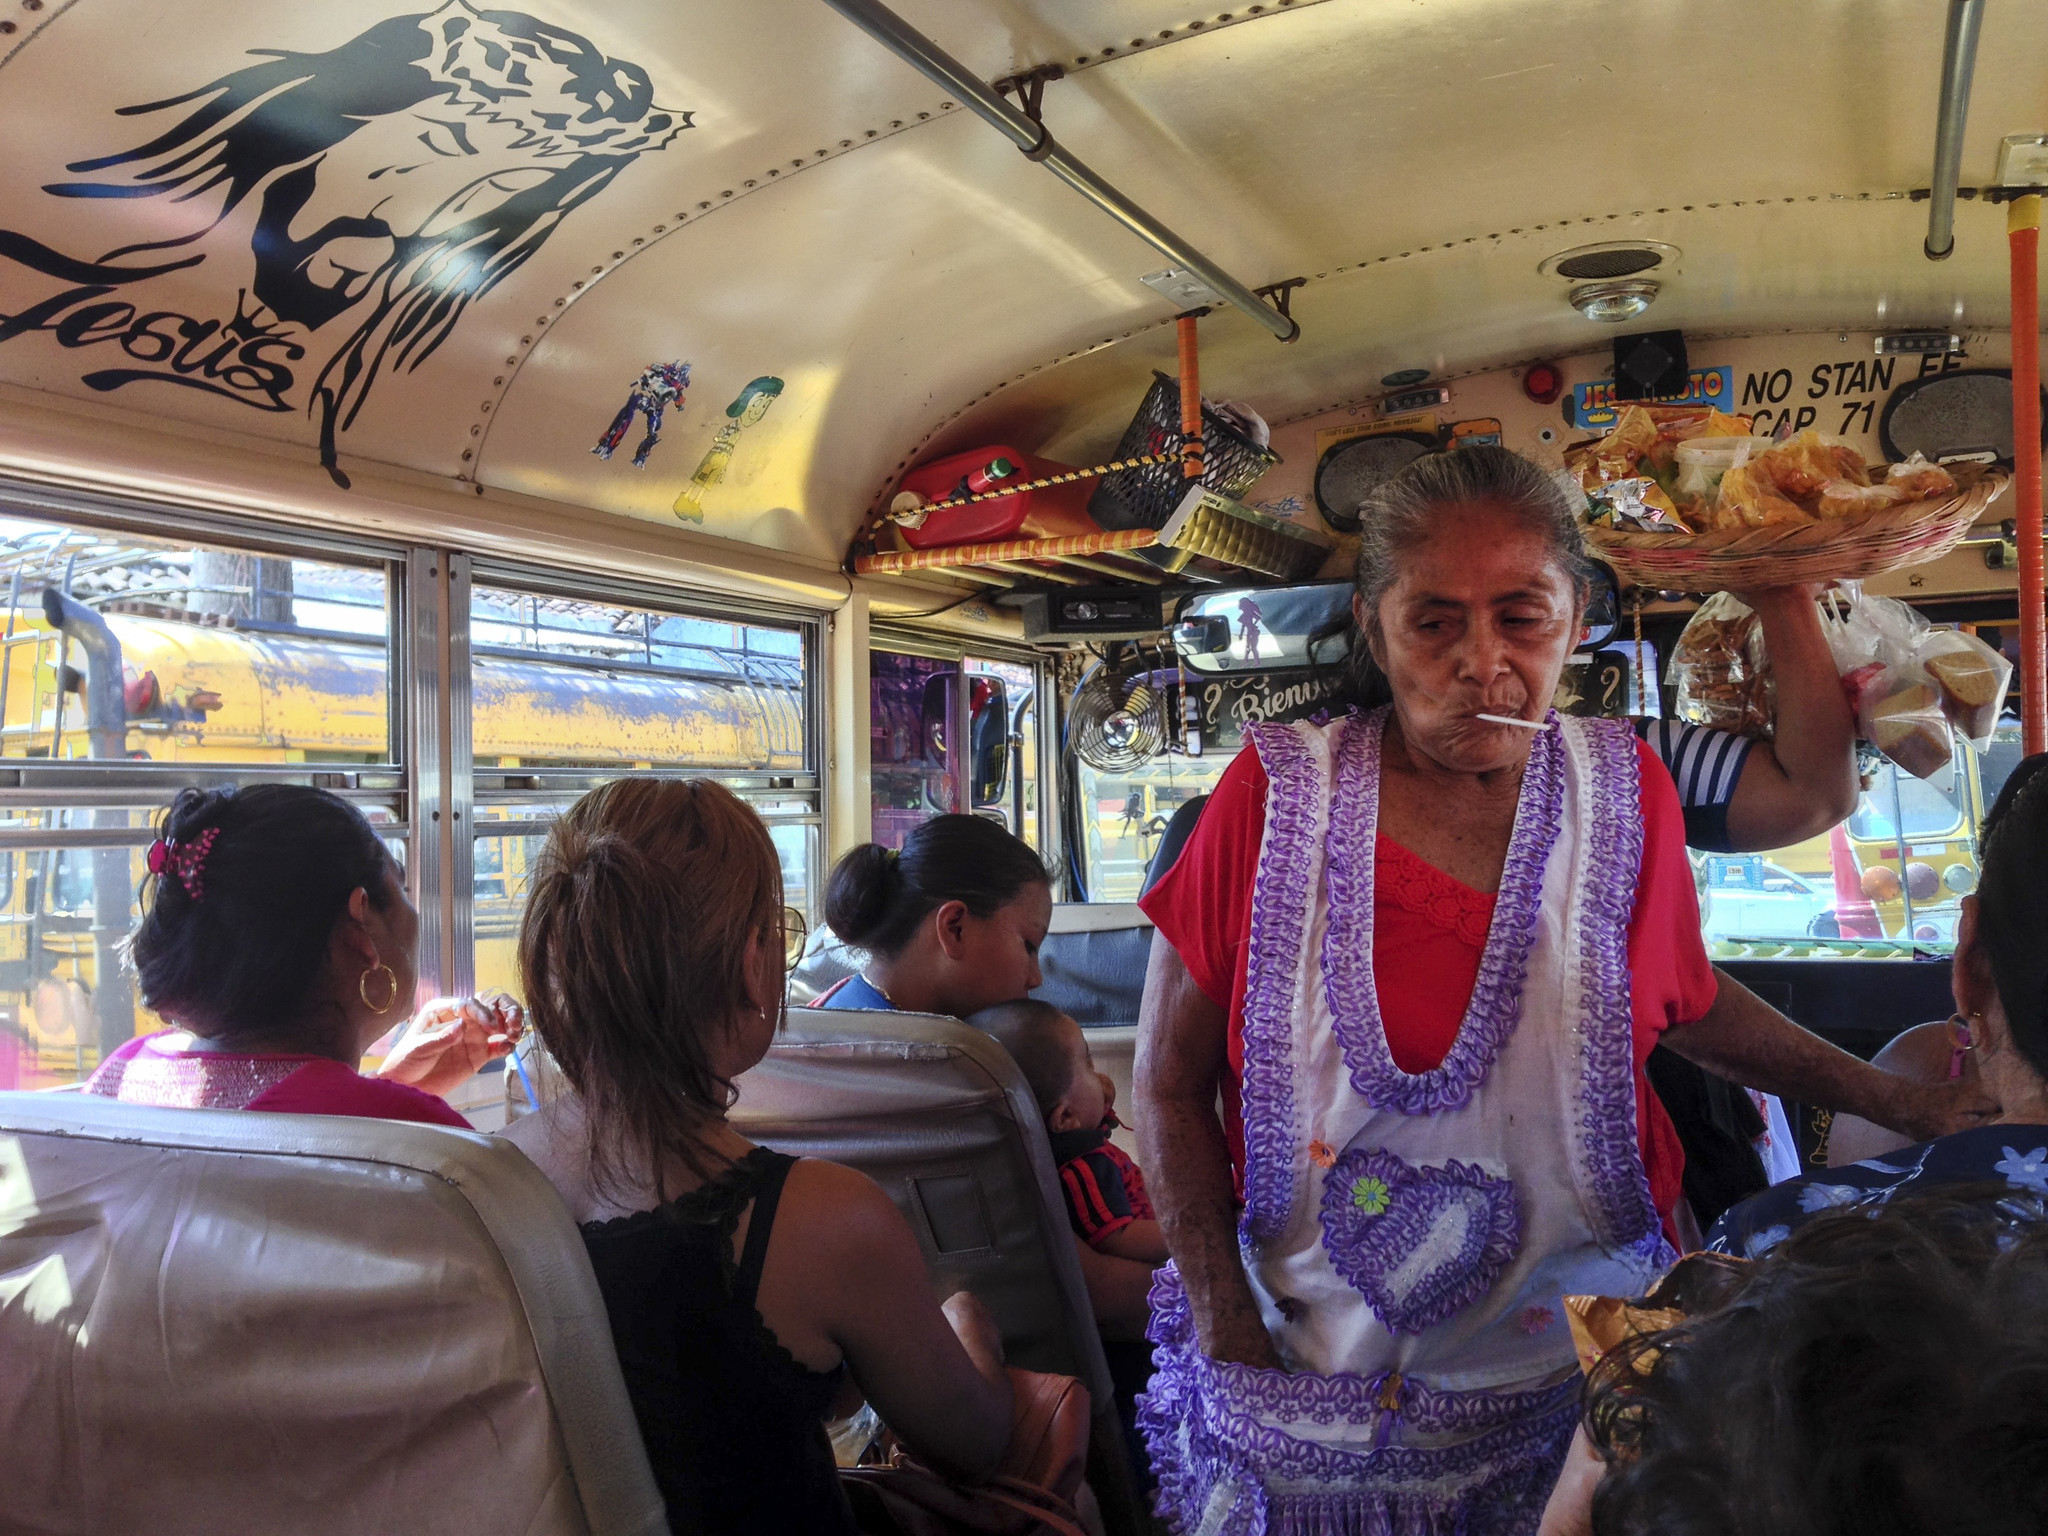 A vendor selling fried plantains and other treats squeezes through the aisle on one of the many chicken buses that Katie Quirk and her family rode during their stay in Granada, Nicaragua.